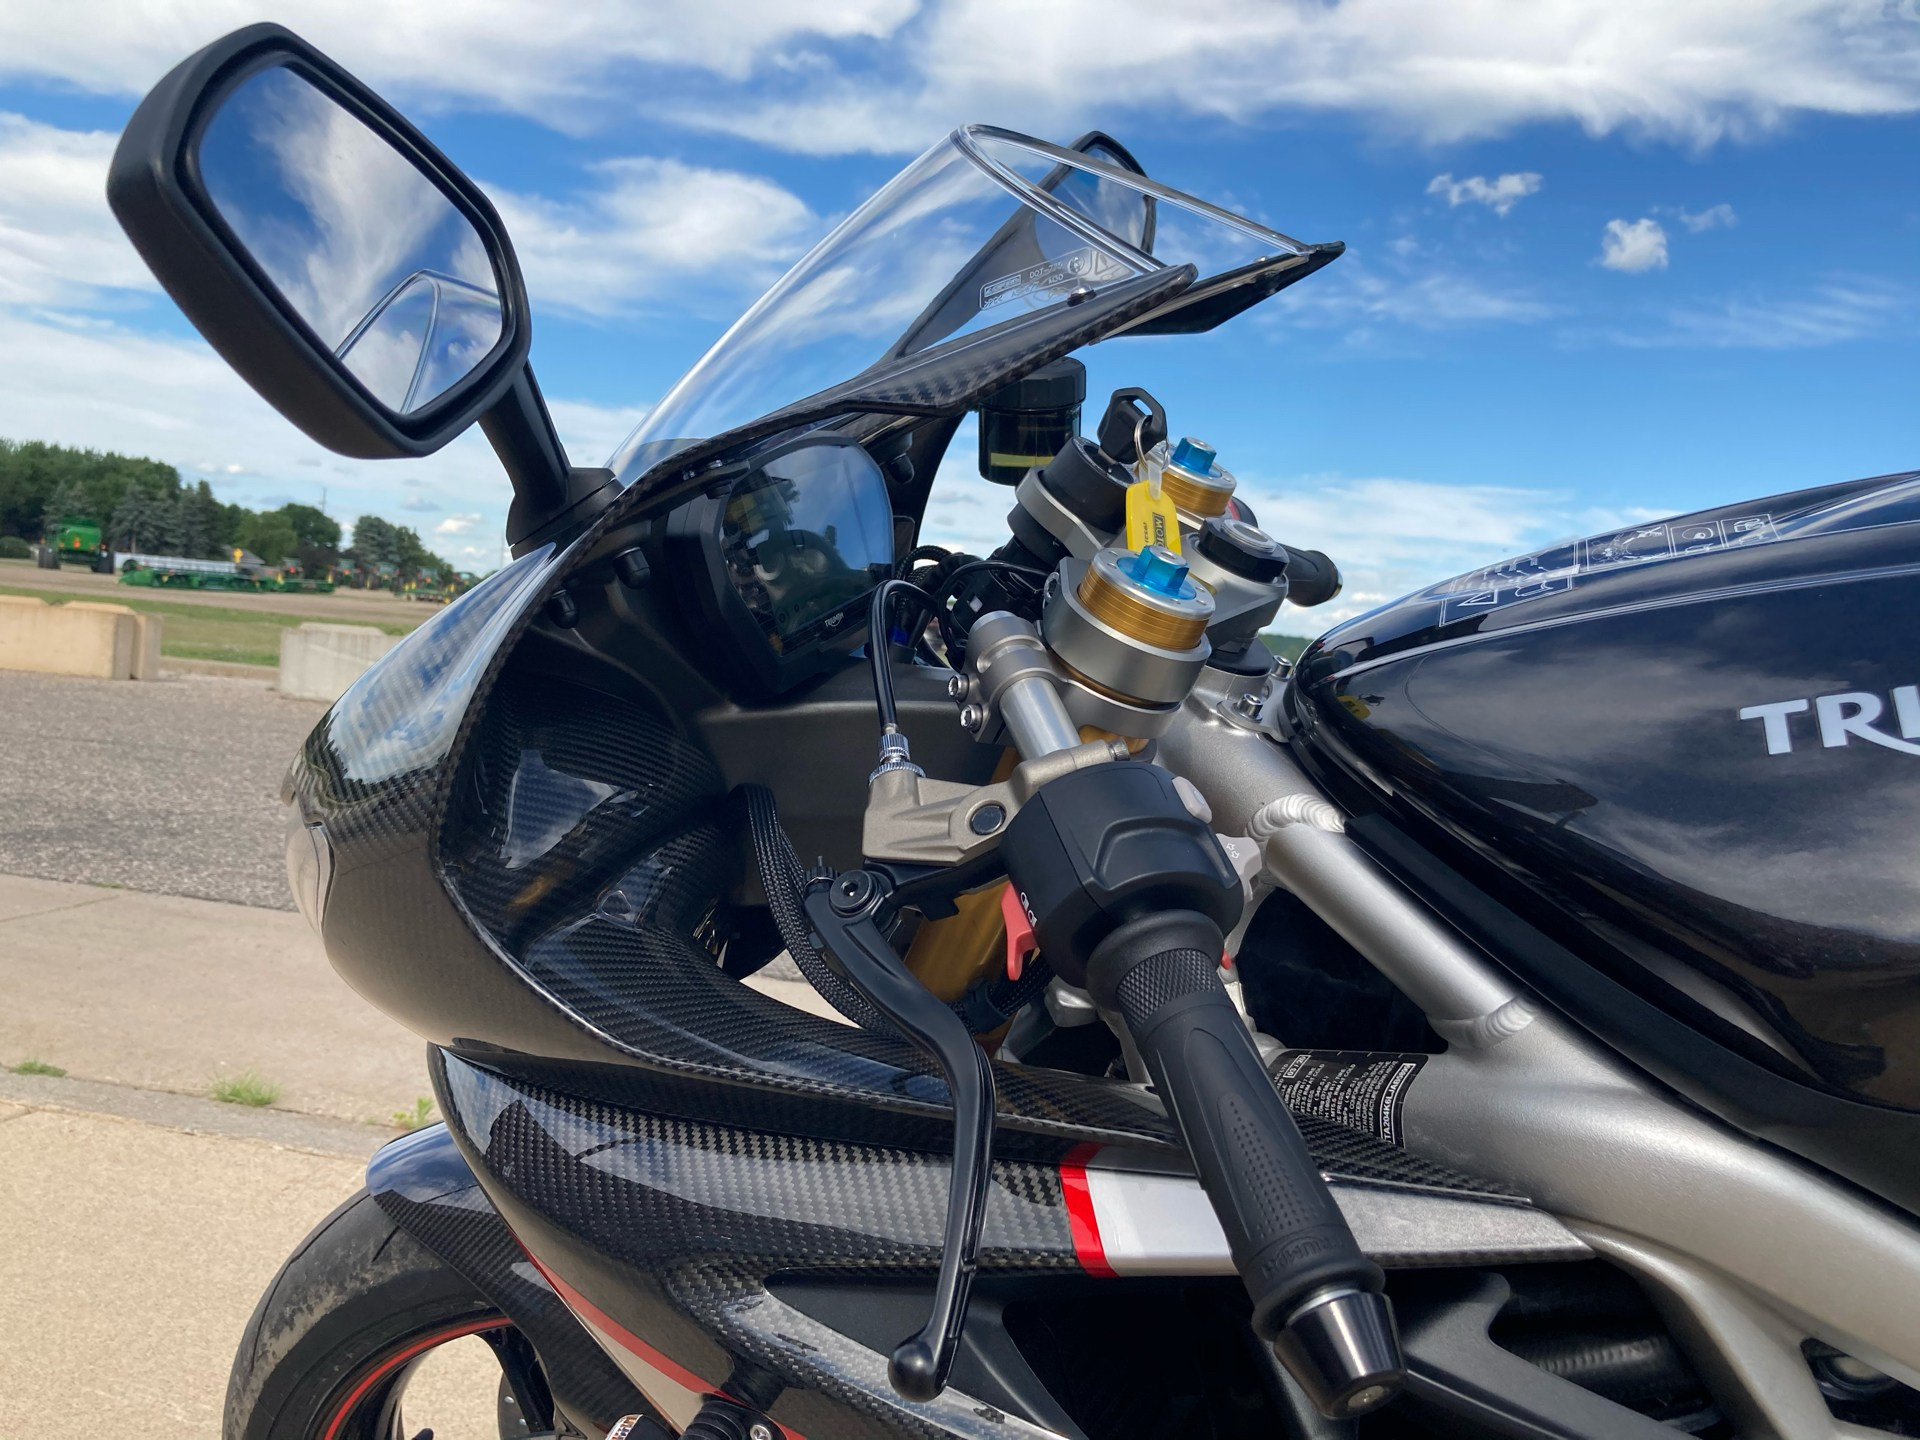 2020 Triumph Daytona Moto 2 Limited Edition in Belle Plaine, Minnesota - Photo 17